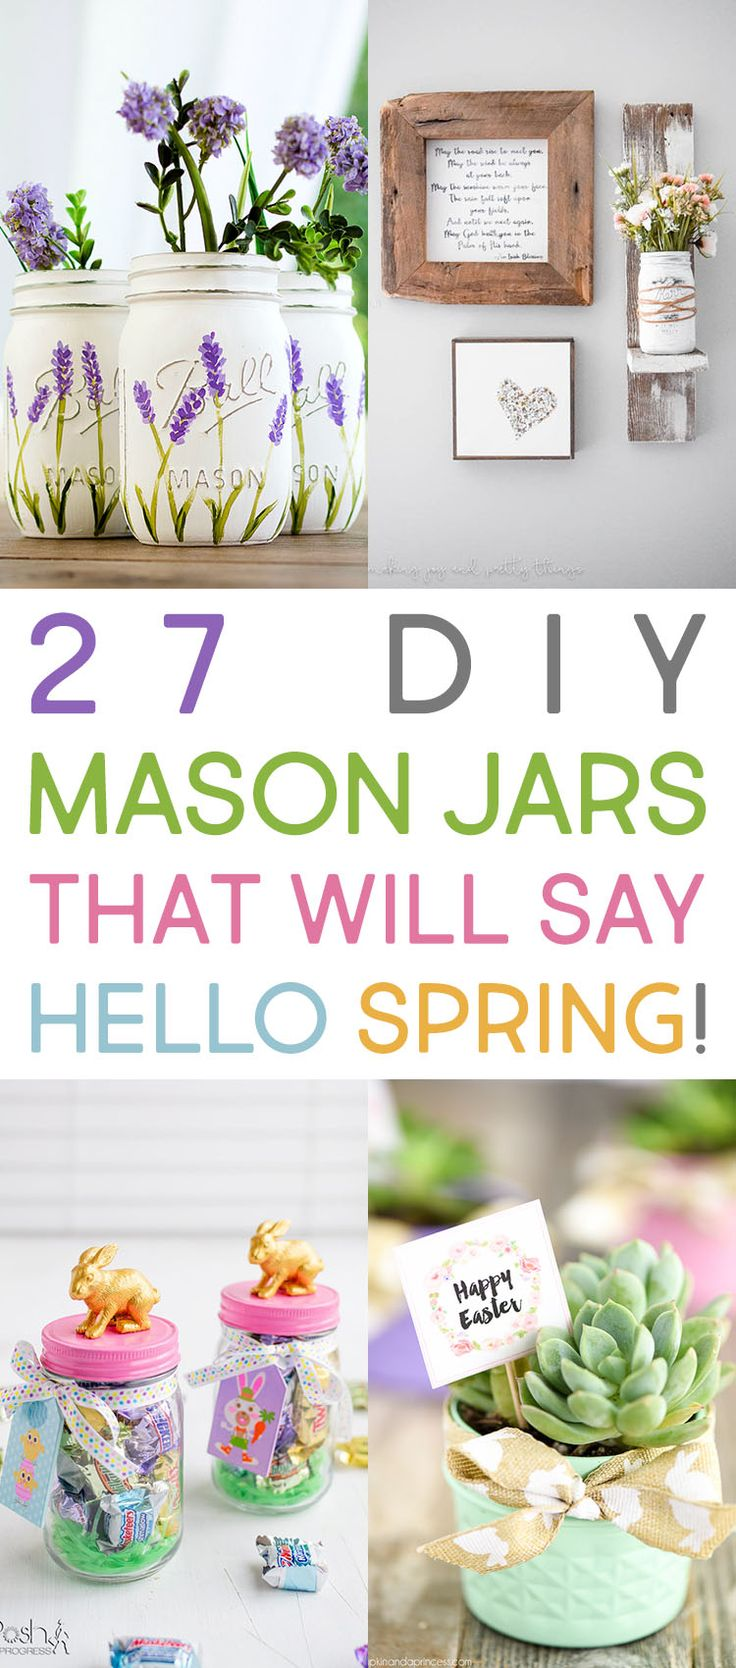 27 DIY Mason Jars That Will Say HELLO Spring